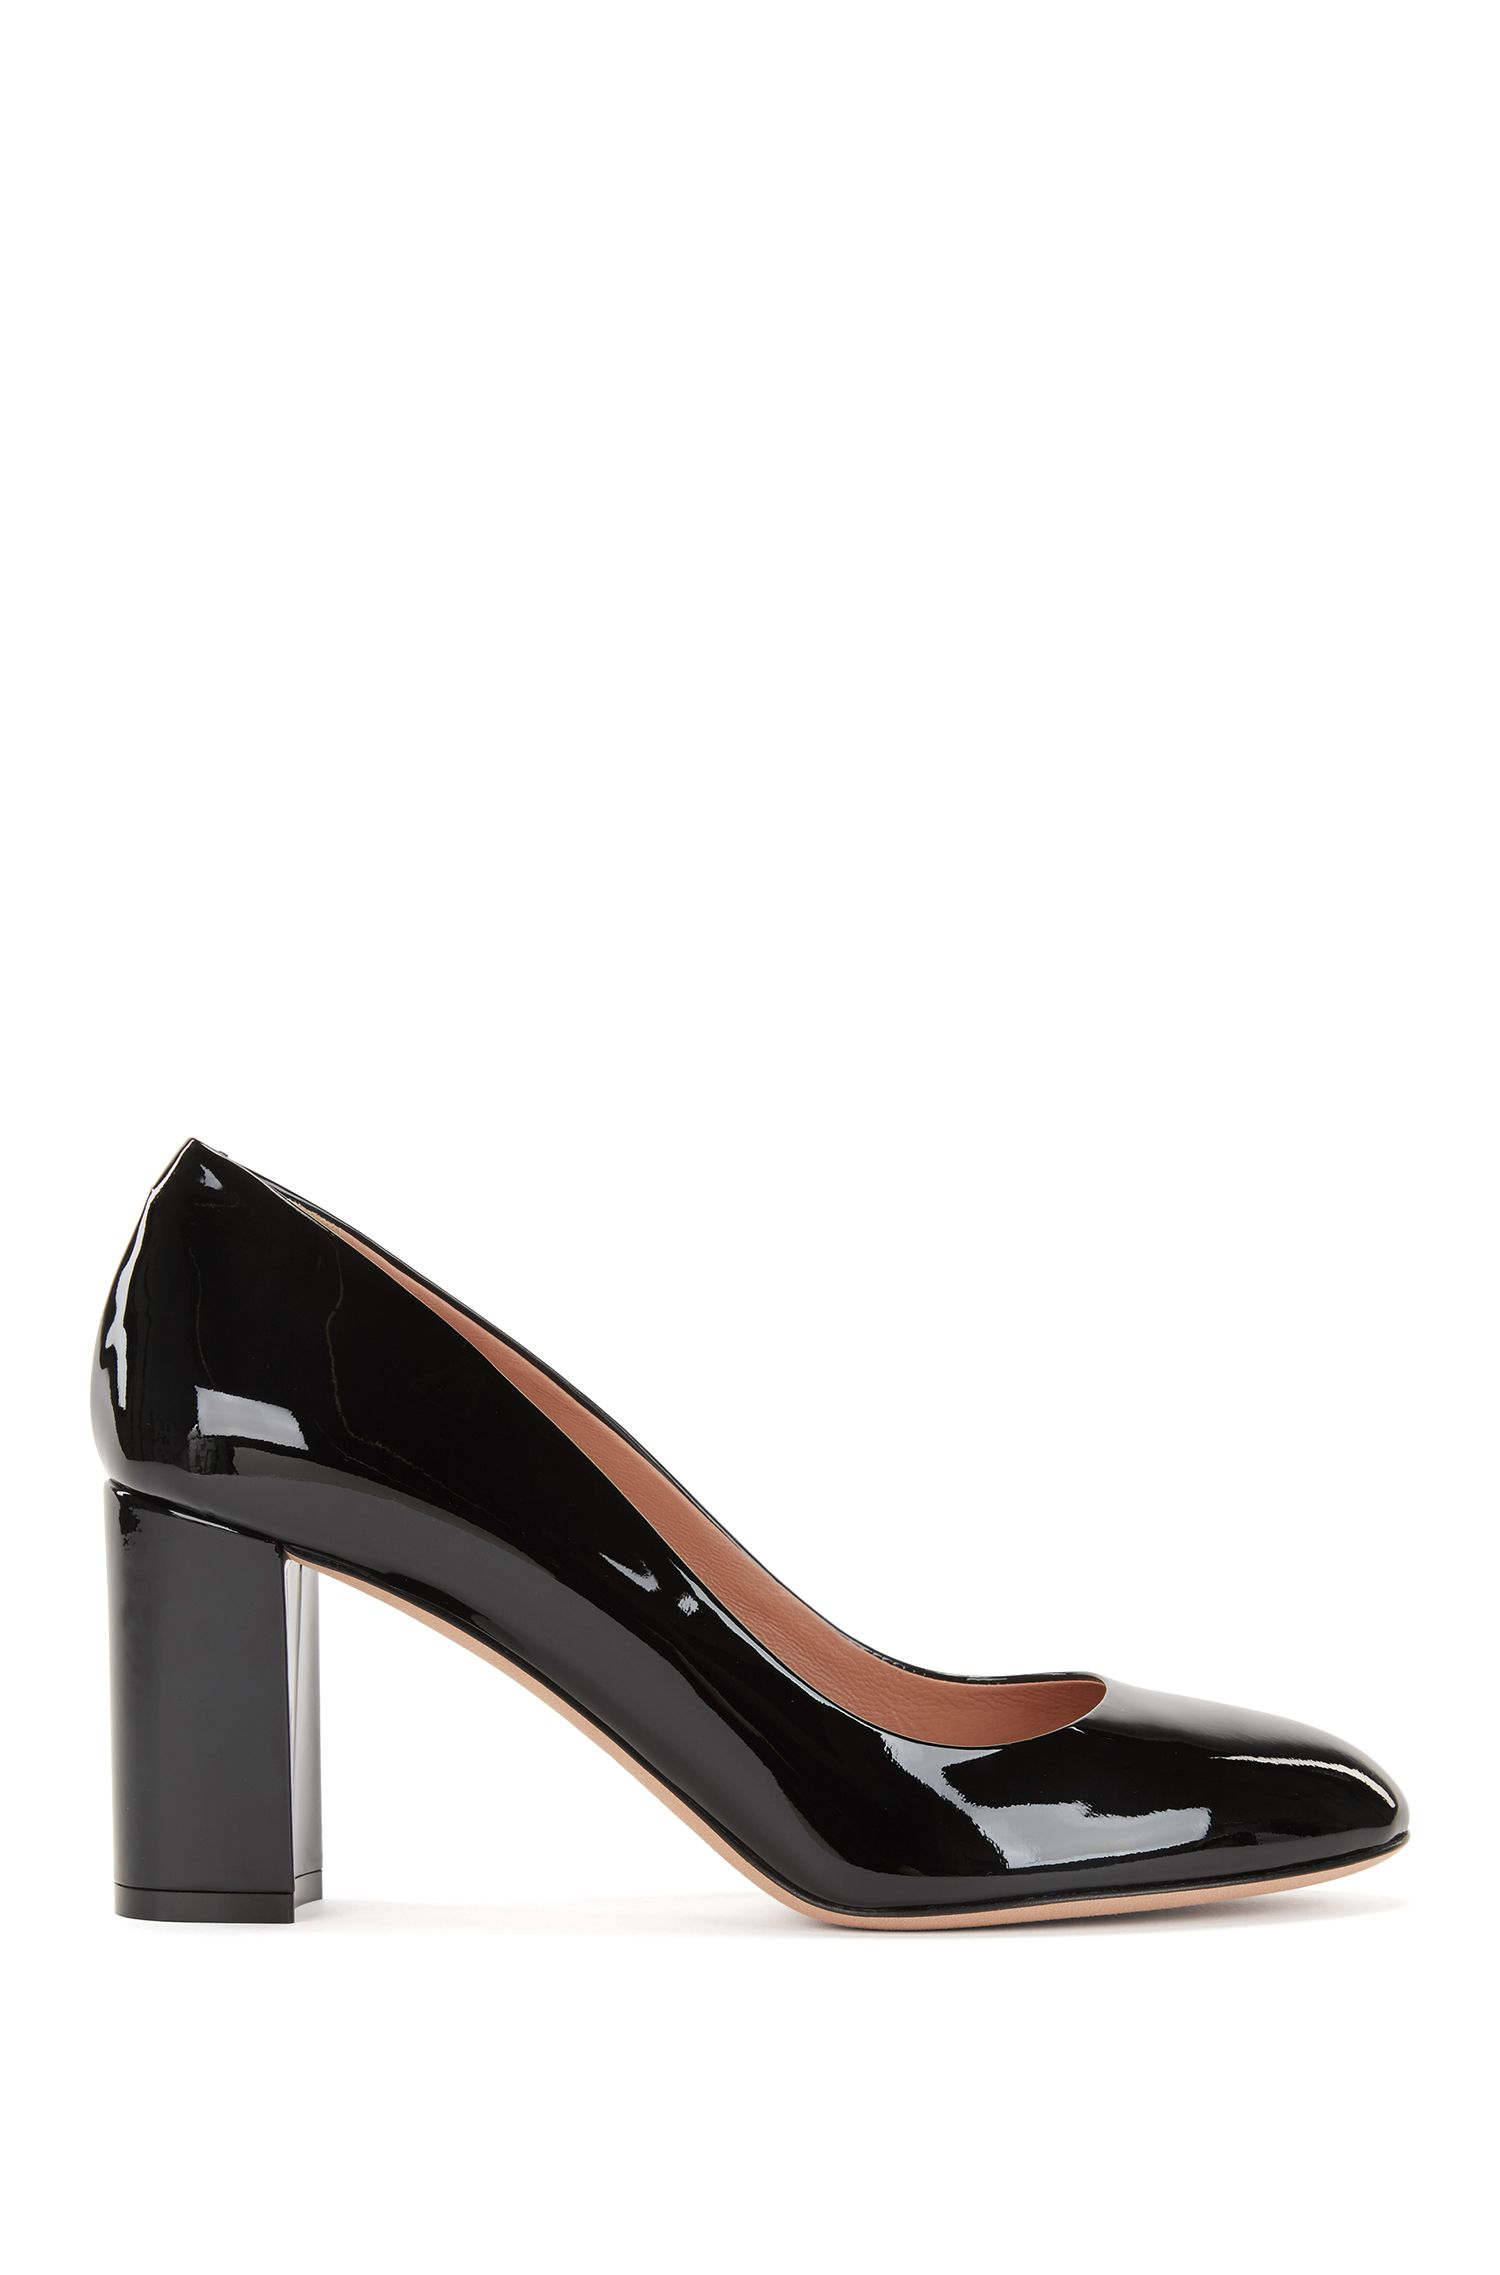 Stack-heel pumps in Italian patent leather